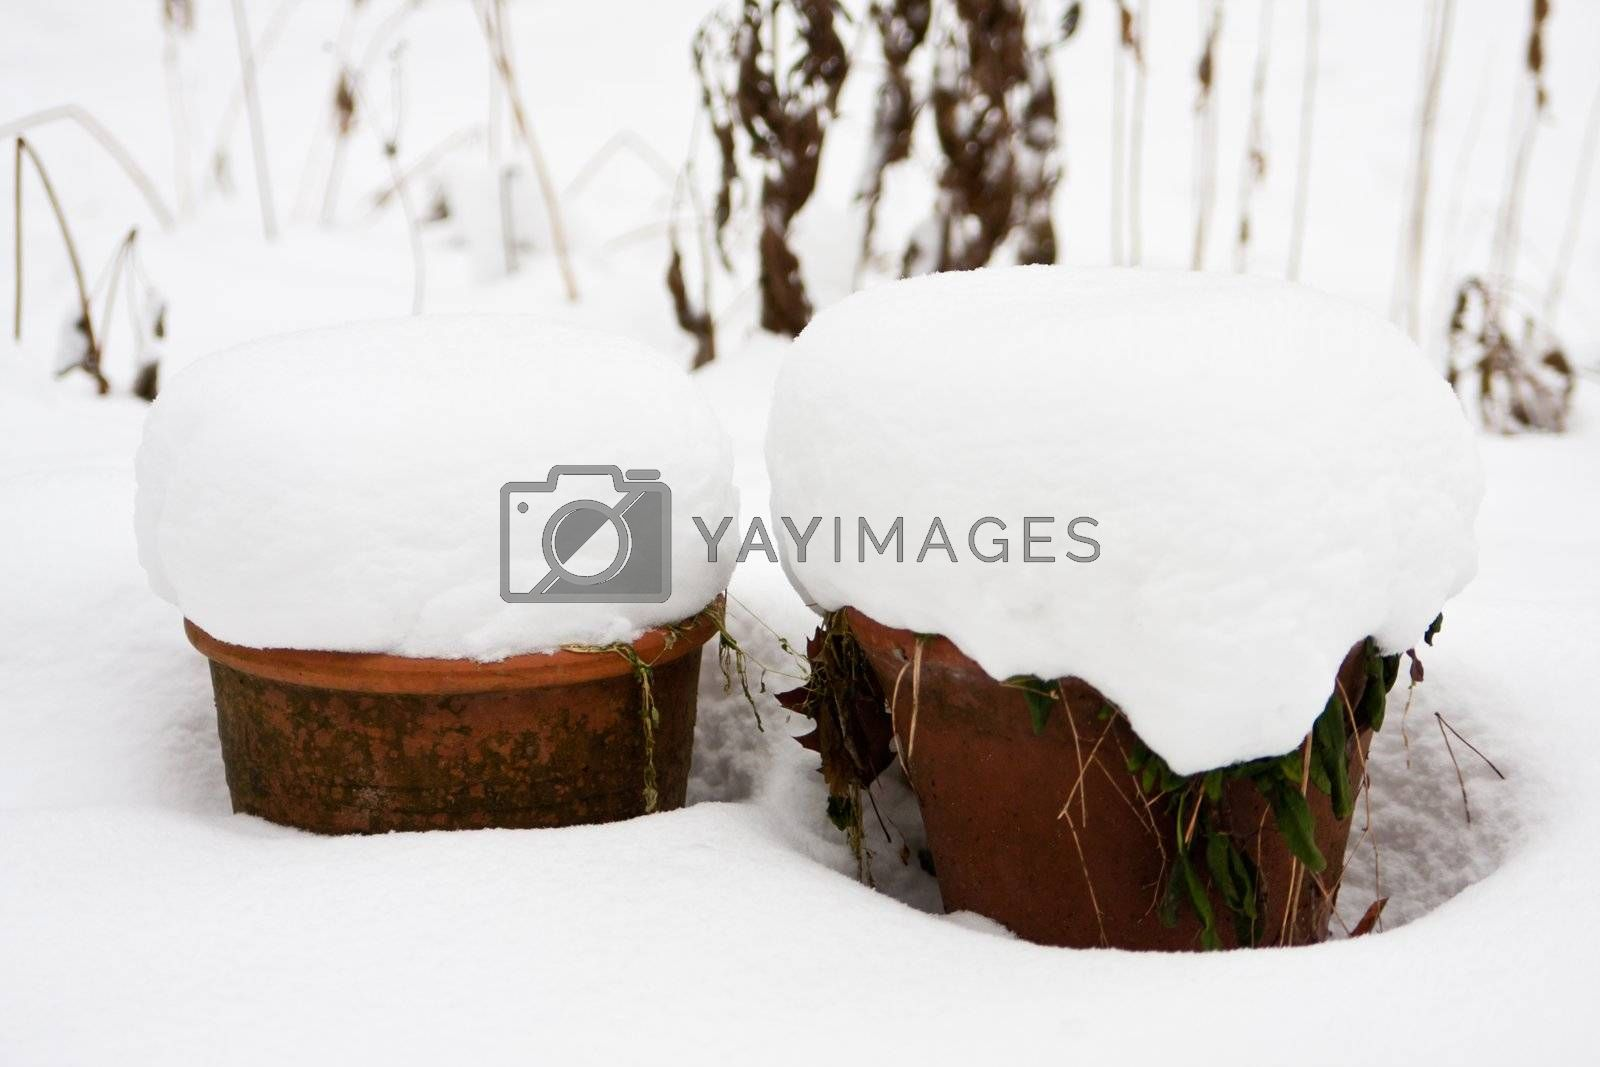 Royalty free image of snow-covered flower pot by Copit